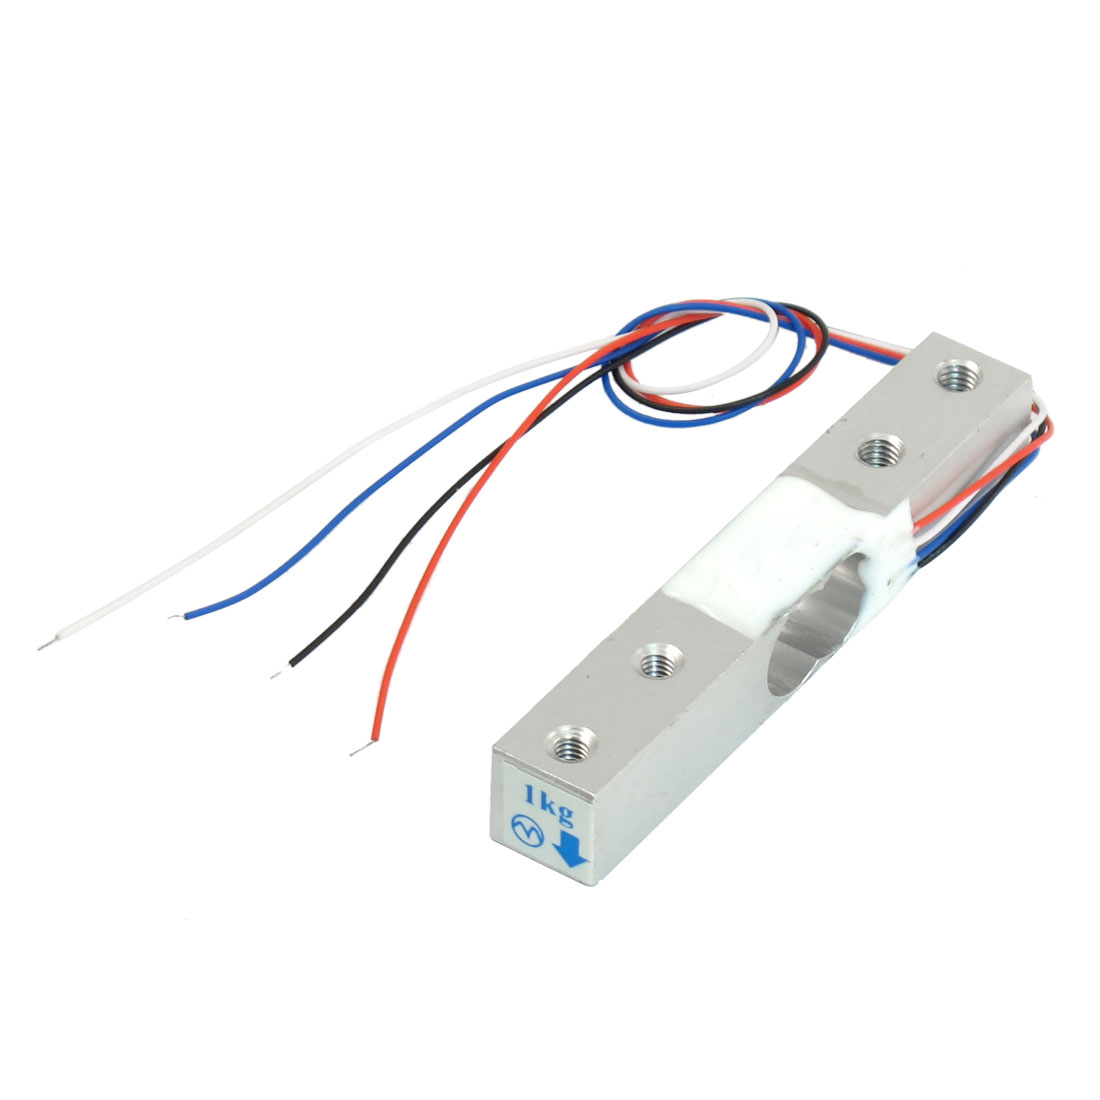 80mmx12.7mmx12.7mm Weighing Electronic Balance Wired Load Cell Sensor 0-1Kg